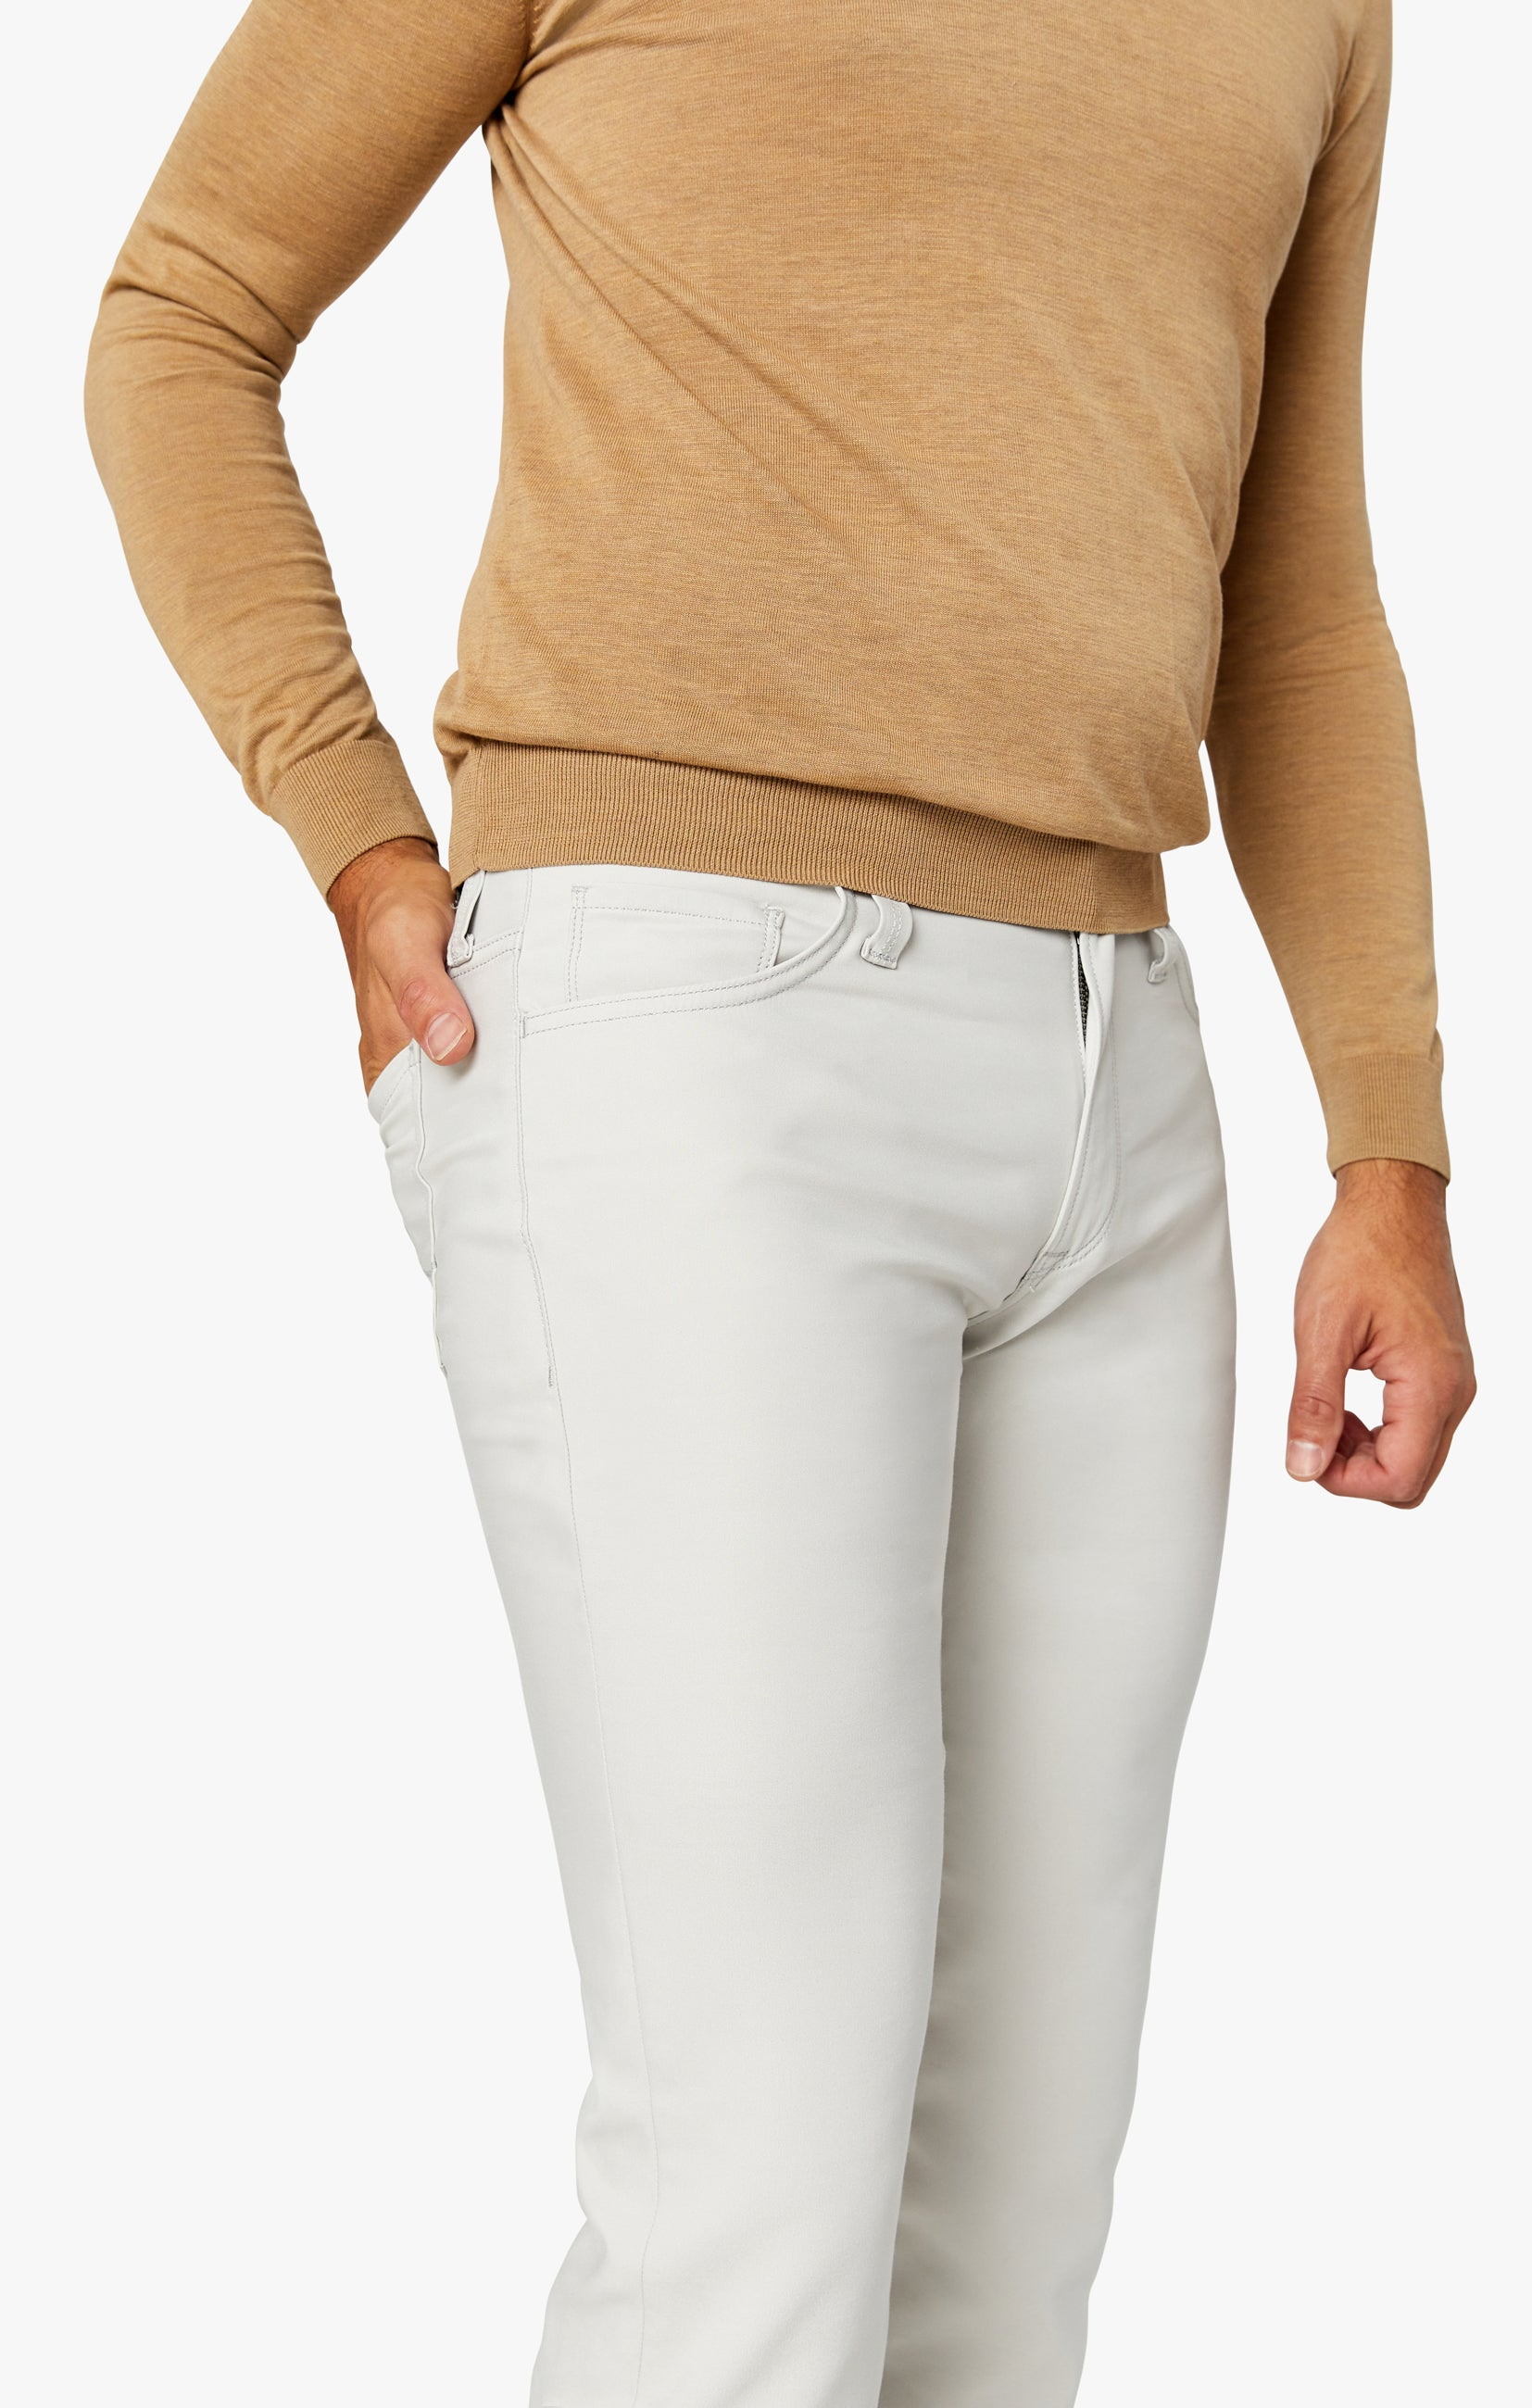 Charisma Classic Fit Jeans in Pearl Commuter Image 7